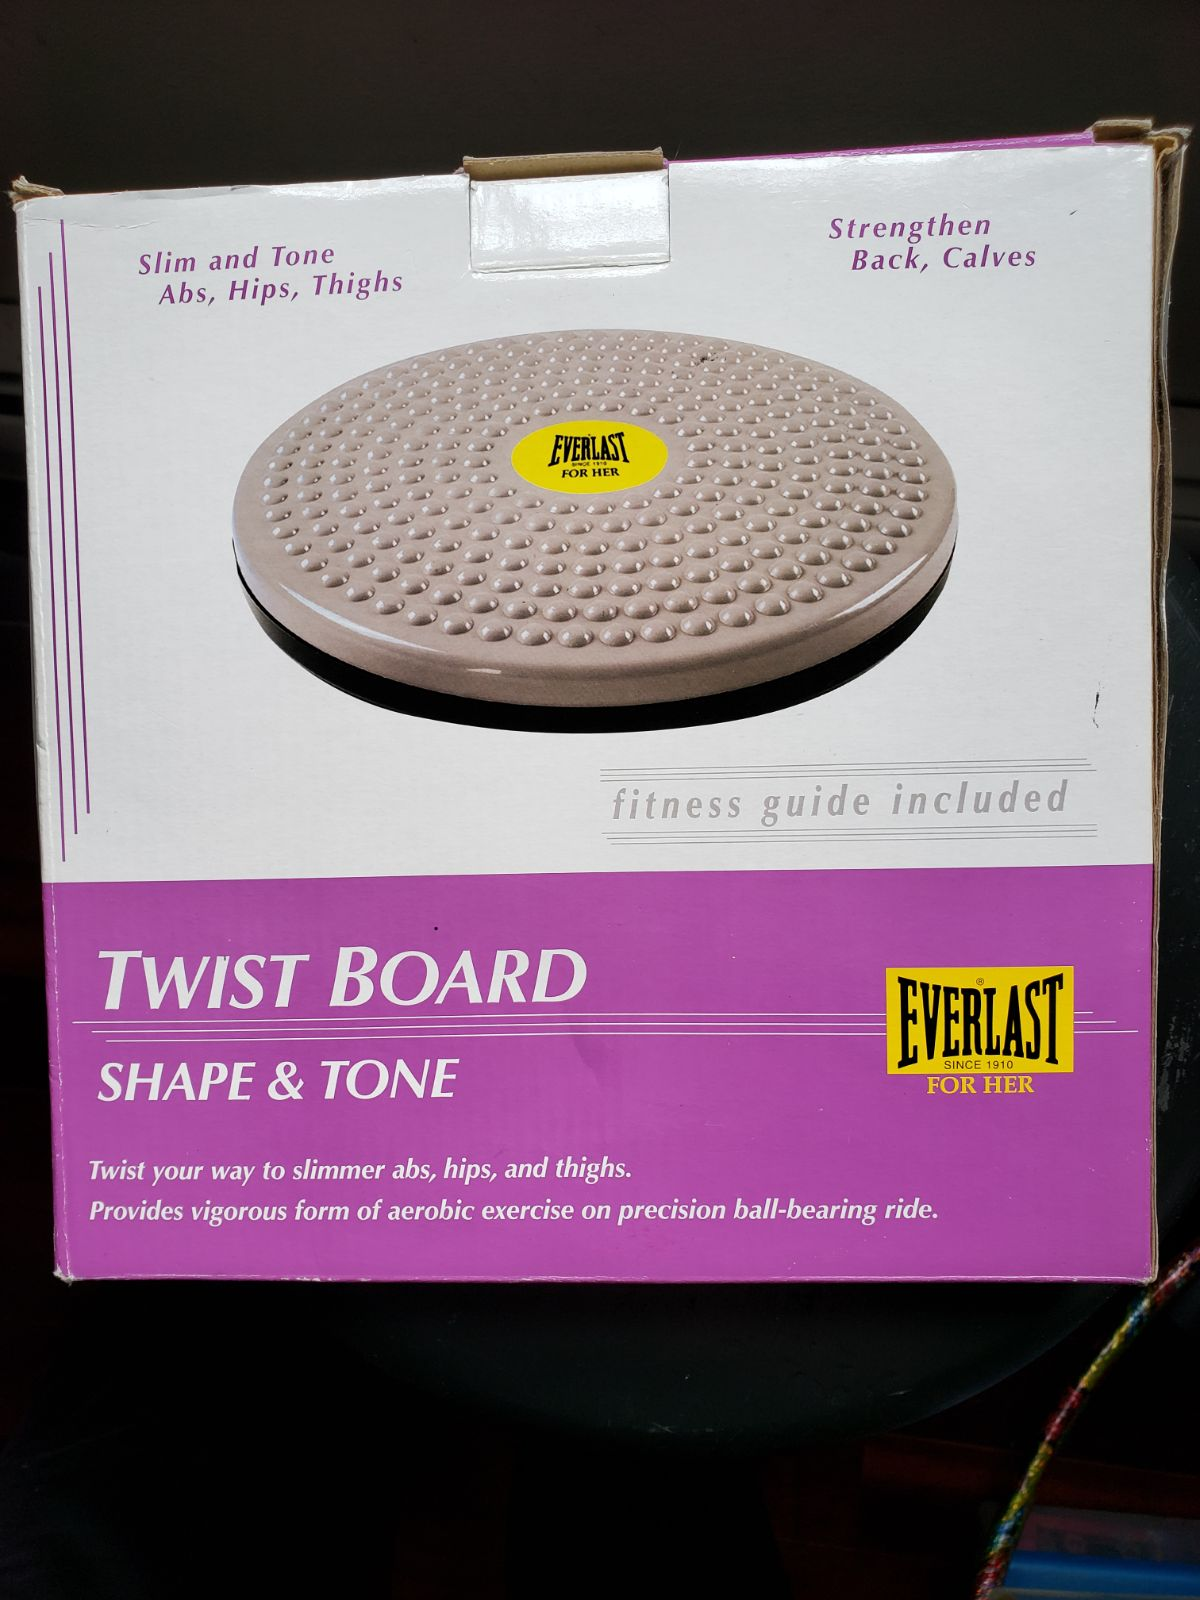 Everlast Twist Board for her